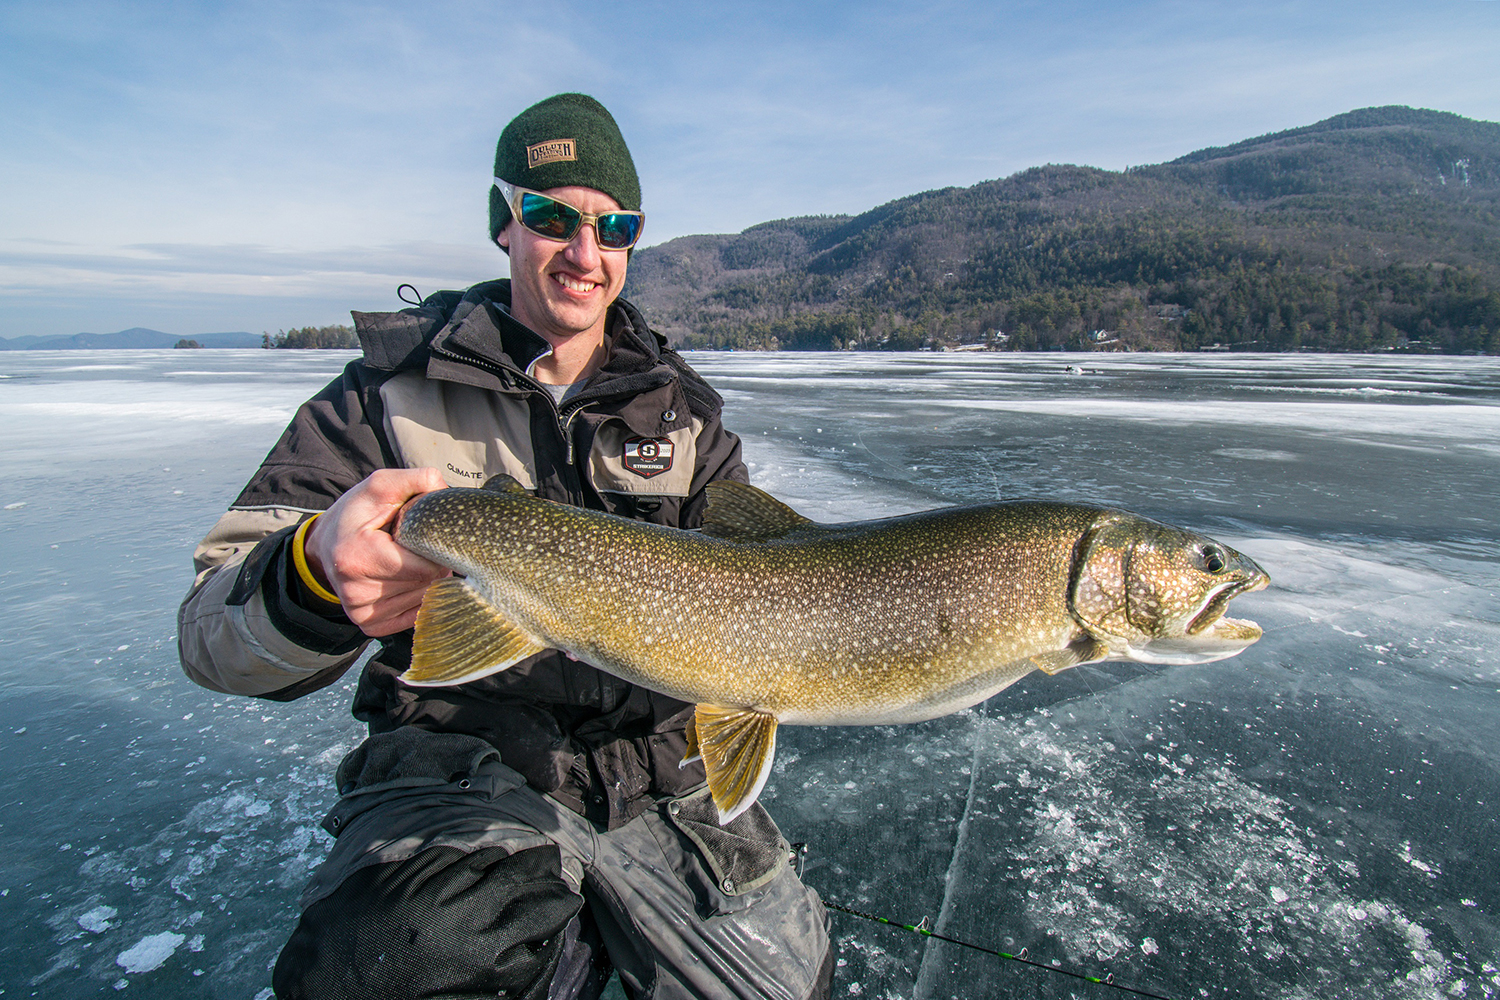 Big lakers will feast during late ice, here's how to locate the fish and how to catch them